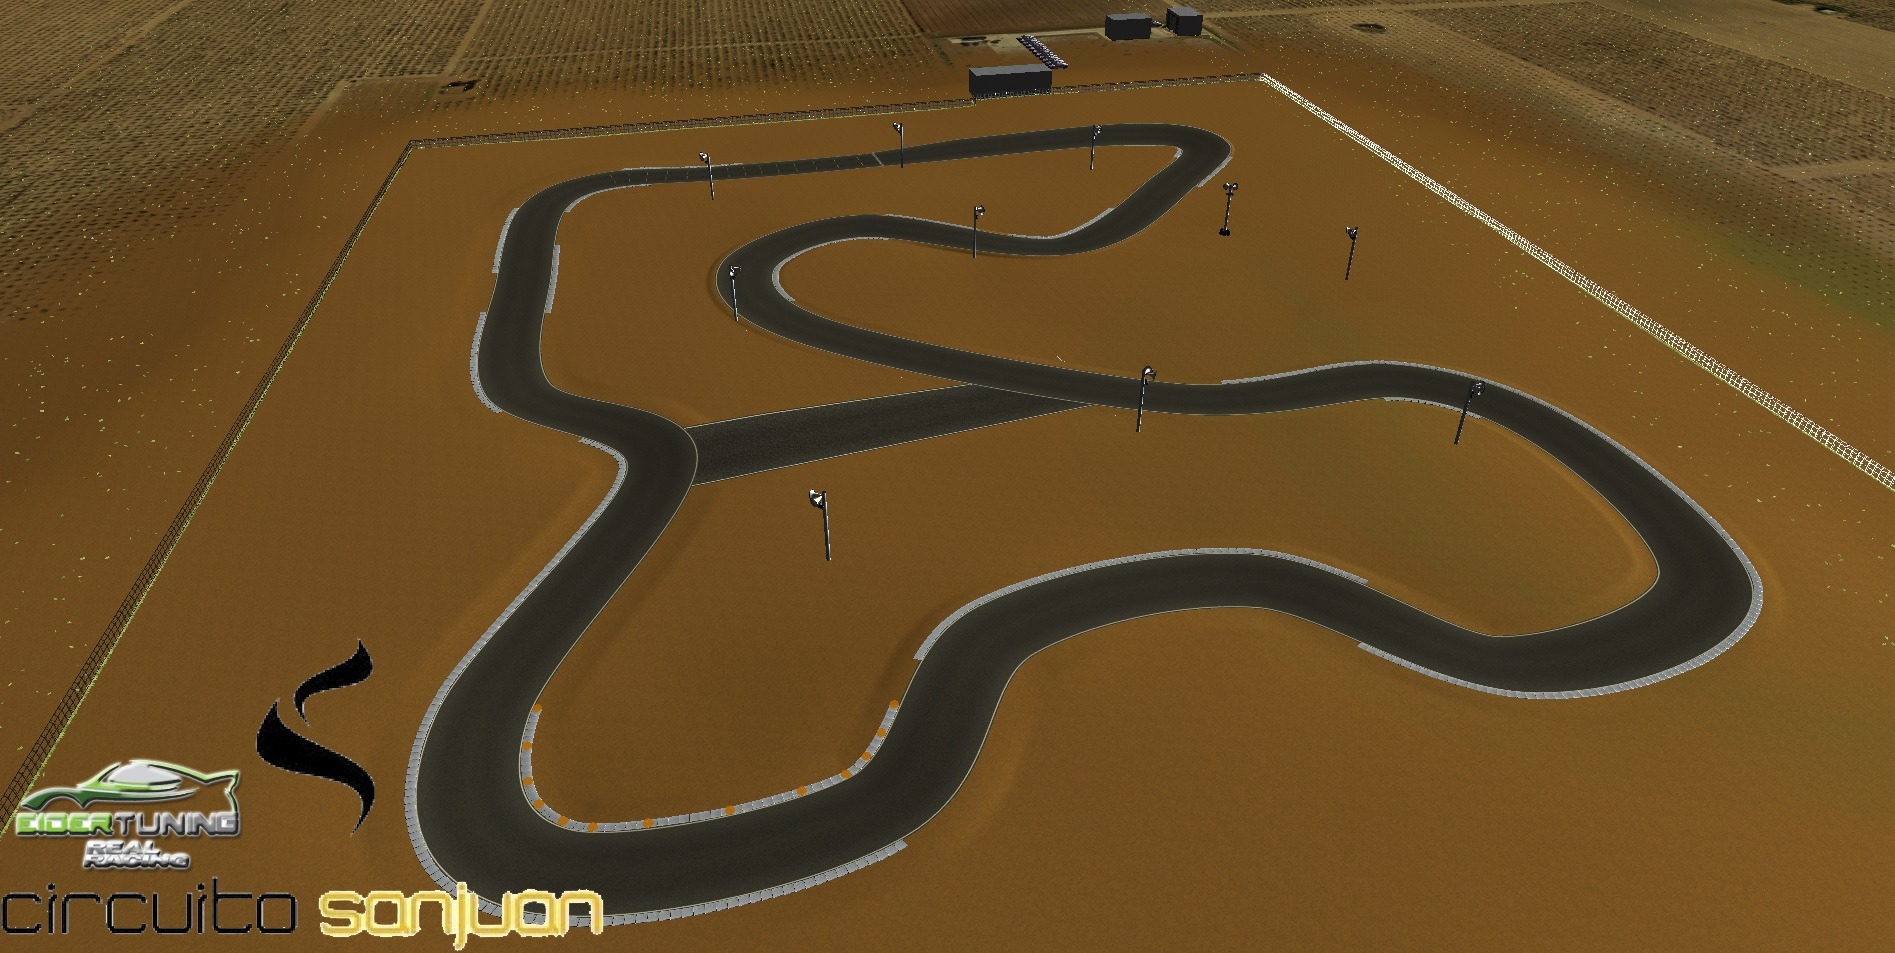 circuito san juan by EiderTuning.jpg